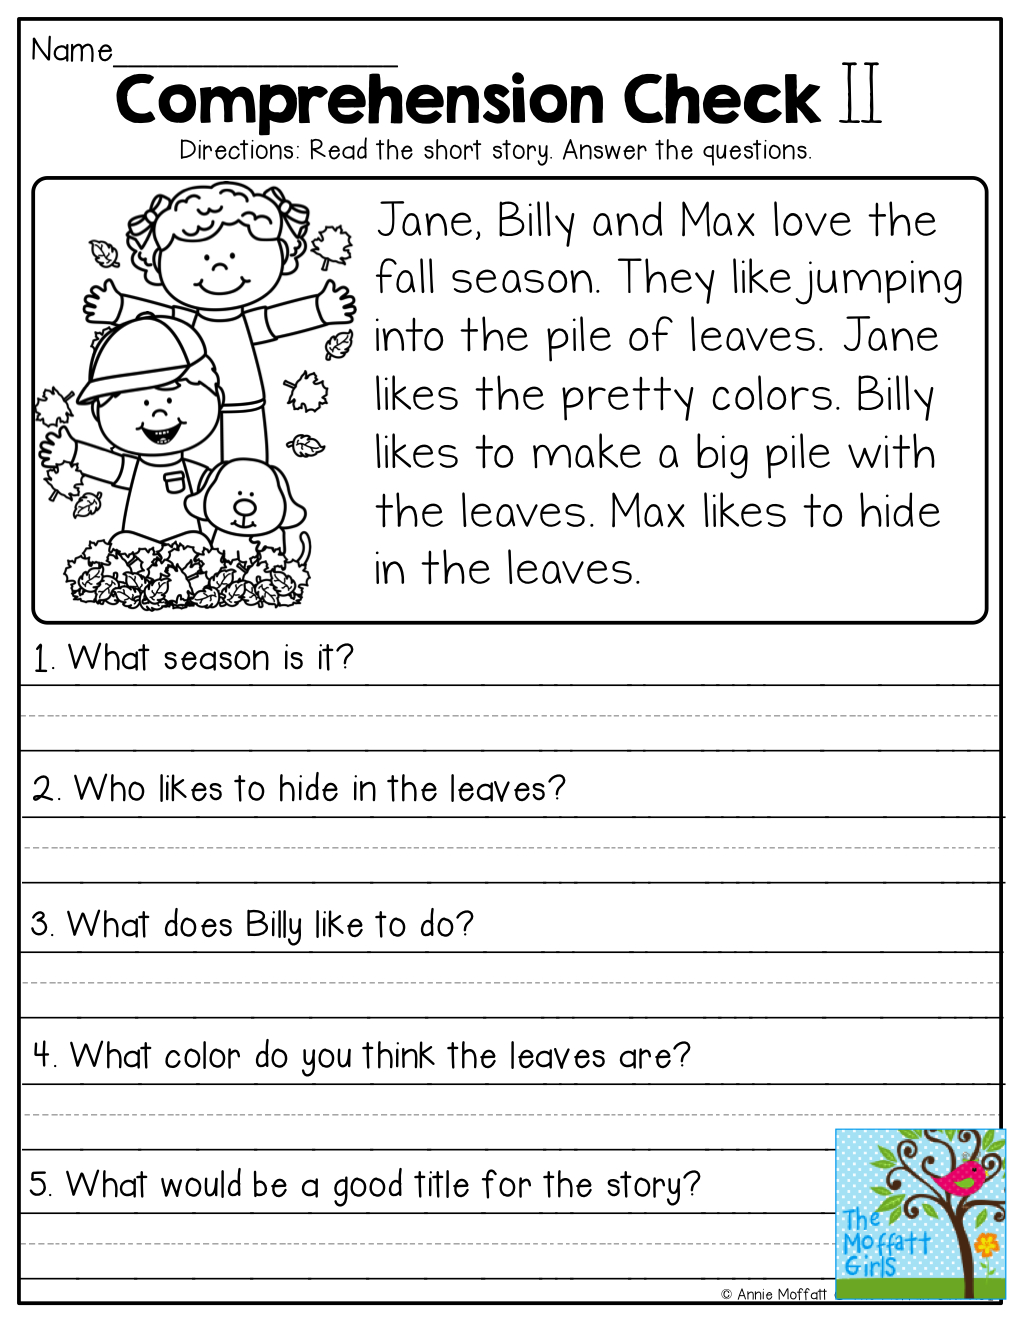 Comprehension Checks And So Many More Useful Printables!   Reading - Free Printable Reading Comprehension Worksheets For 3Rd Grade